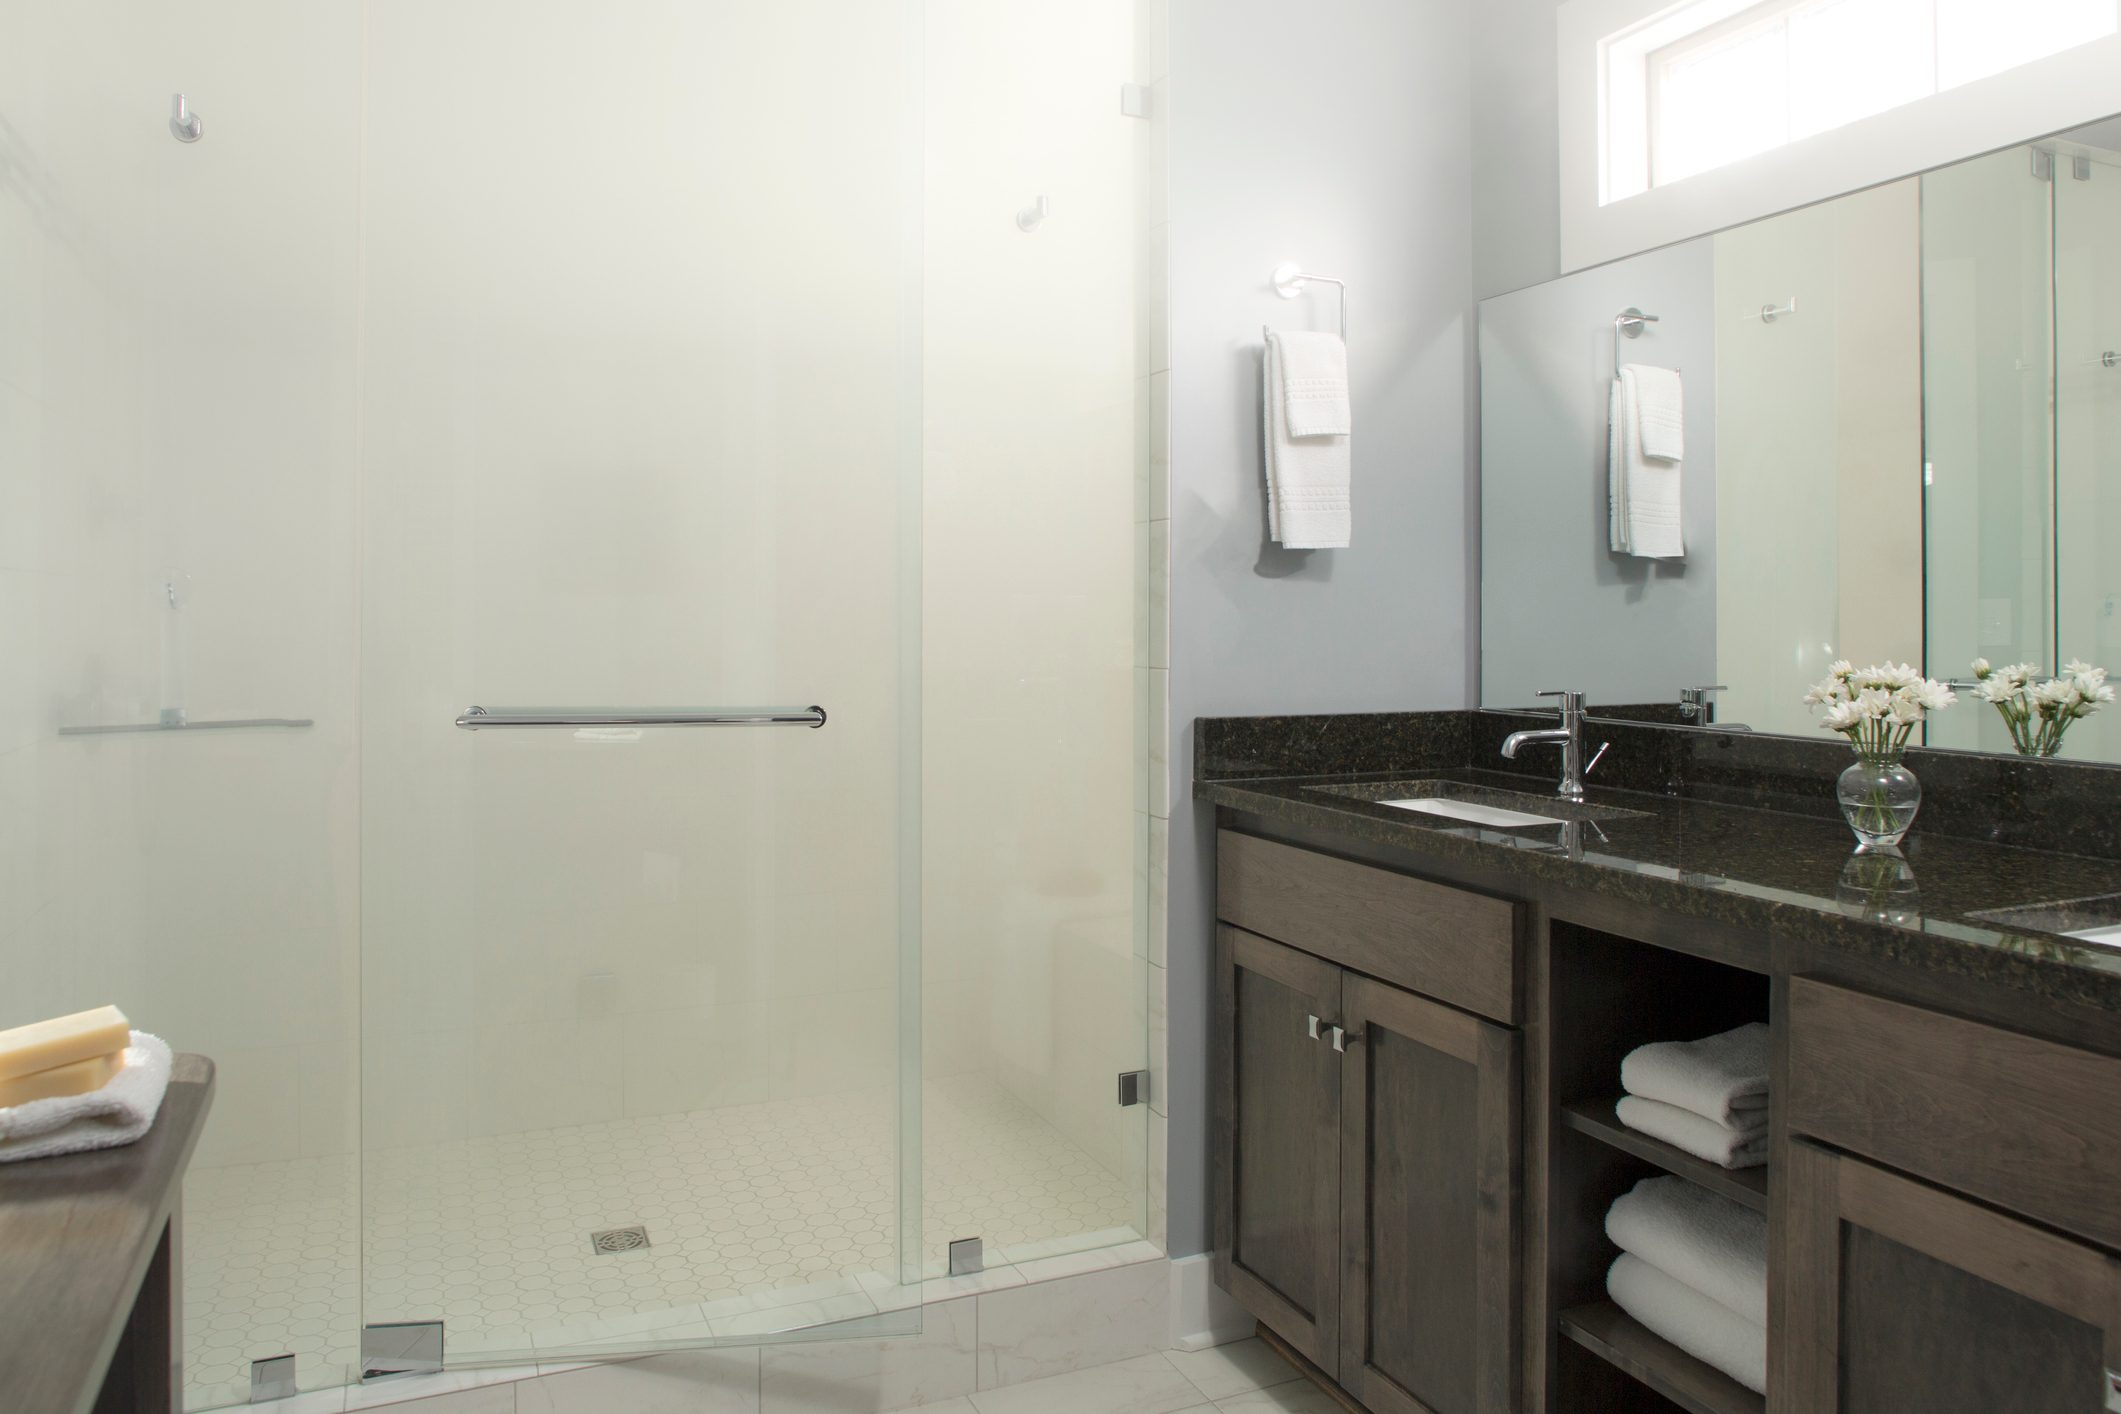 Tiled Modern Bathroom with Glass Shower Doors and steam shower